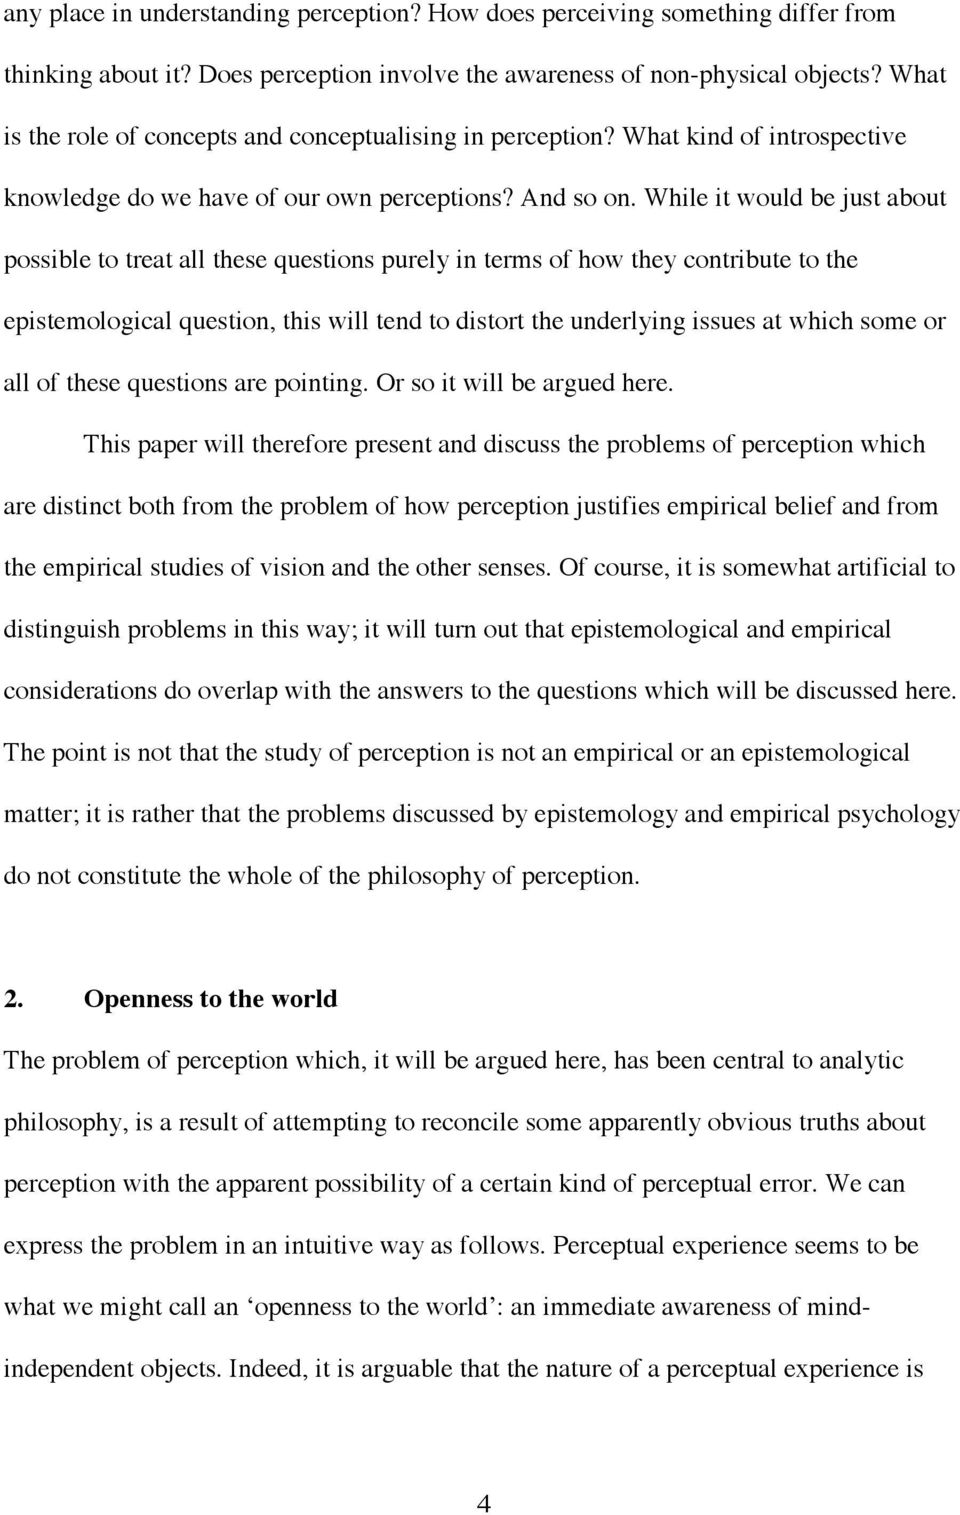 While it would be just about possible to treat all these questions purely in terms of how they contribute to the epistemological question, this will tend to distort the underlying issues at which